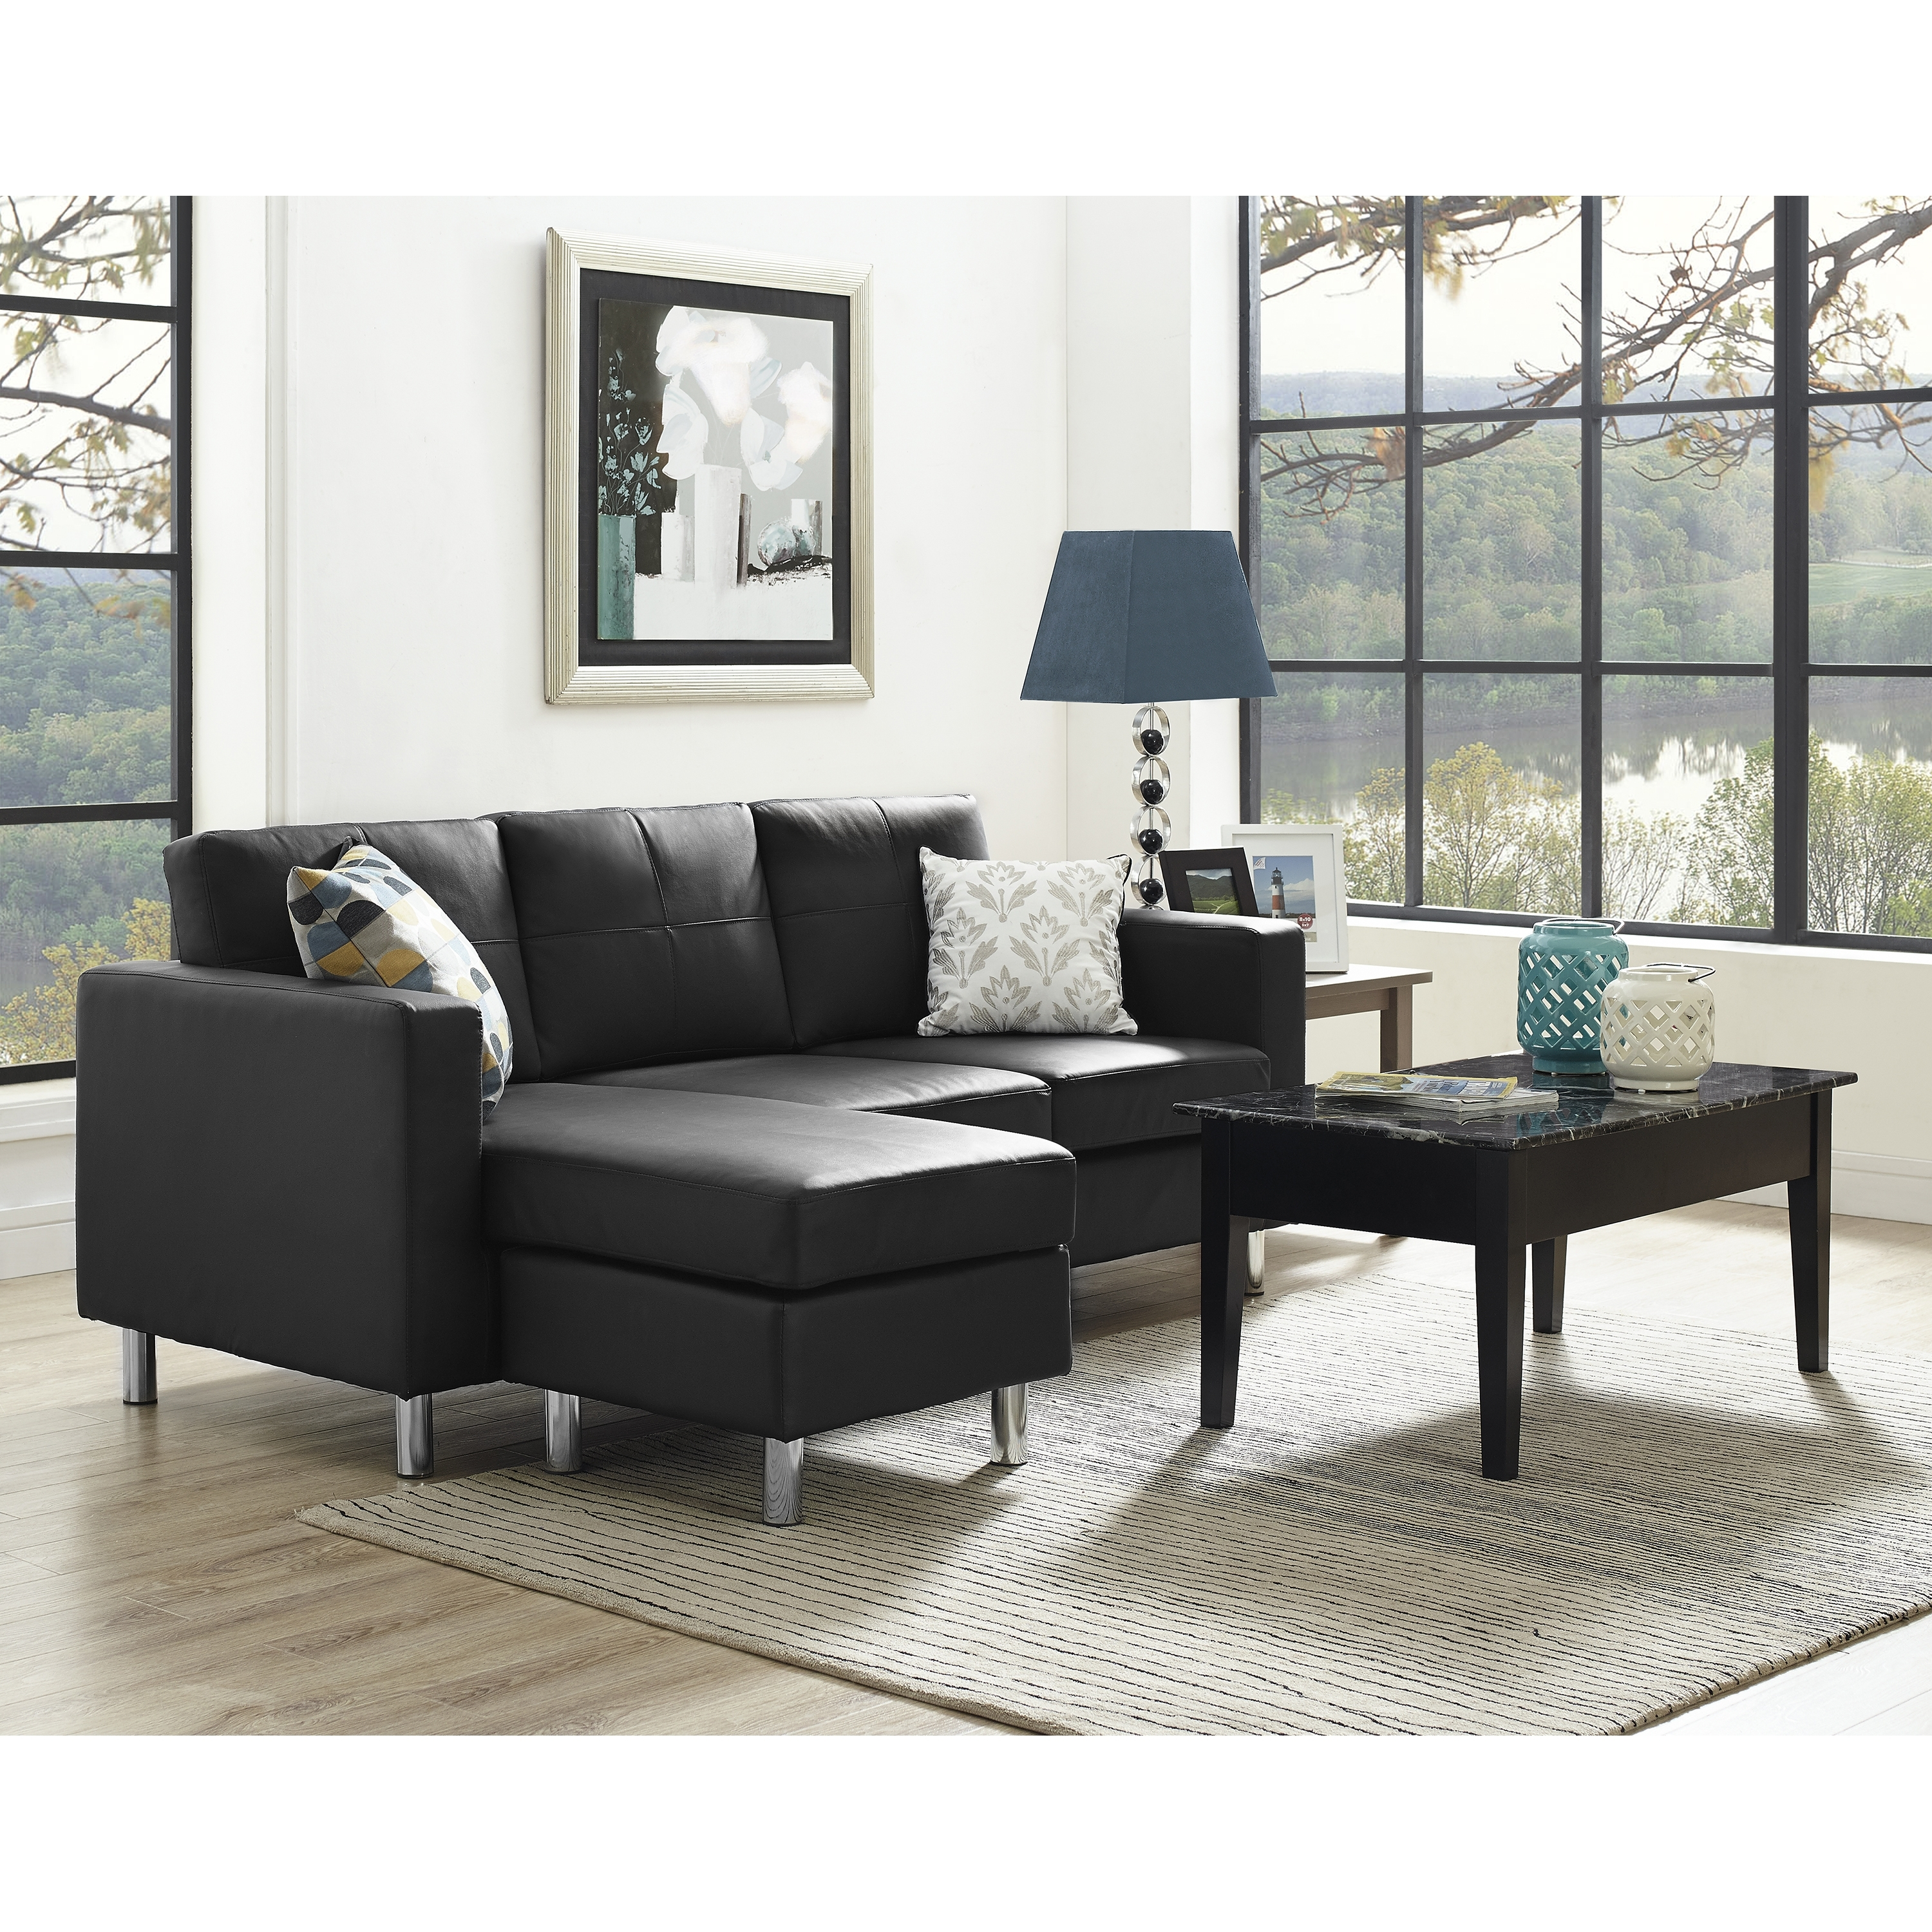 Best Sears Sectional Sofa 79 In Costco Leather Sectional Sofa With intended for Sears Sectional Sofas (Image 2 of 10)